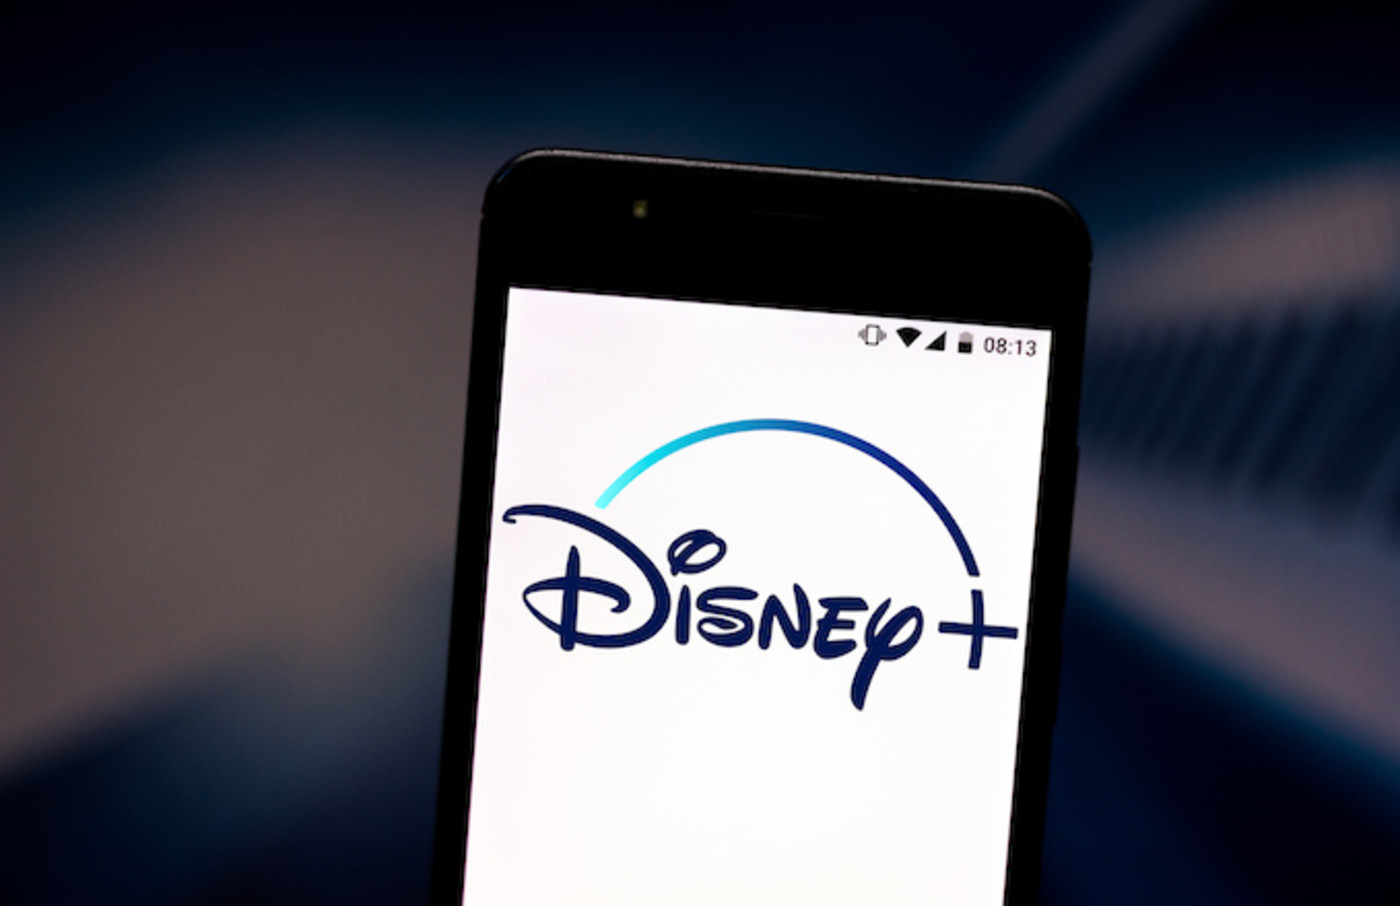 Disney+ (Plus) logo seen displayed on a smartphone.